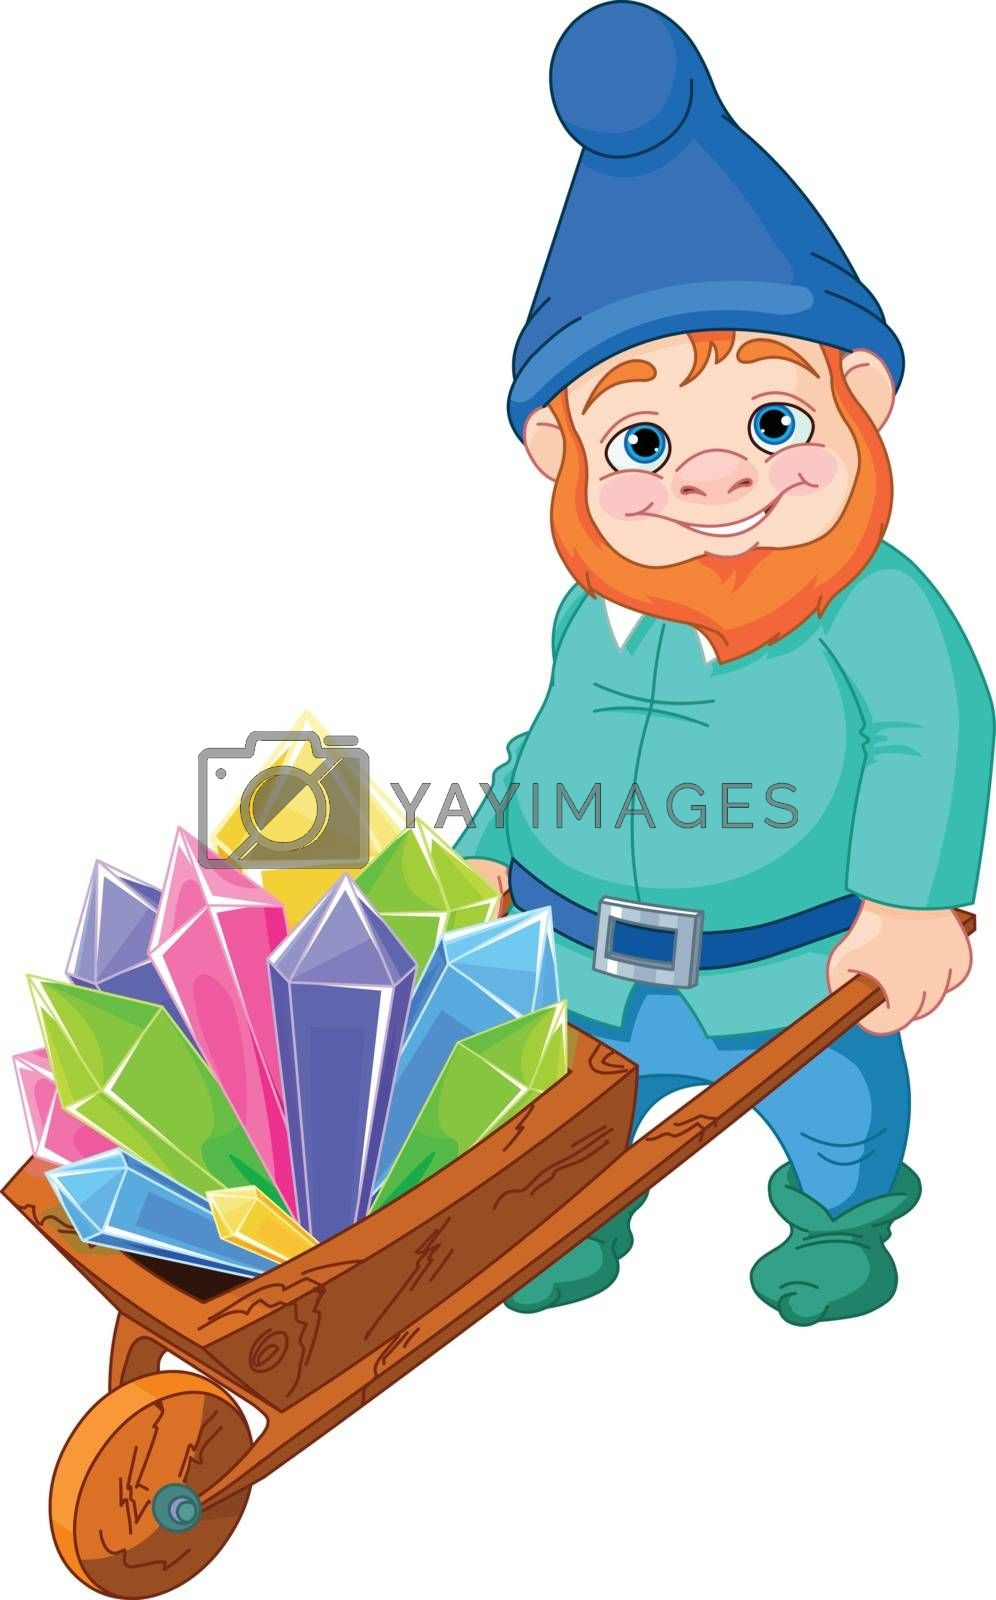 Royalty free image of Gnome with Quartz crystals by Dazdraperma